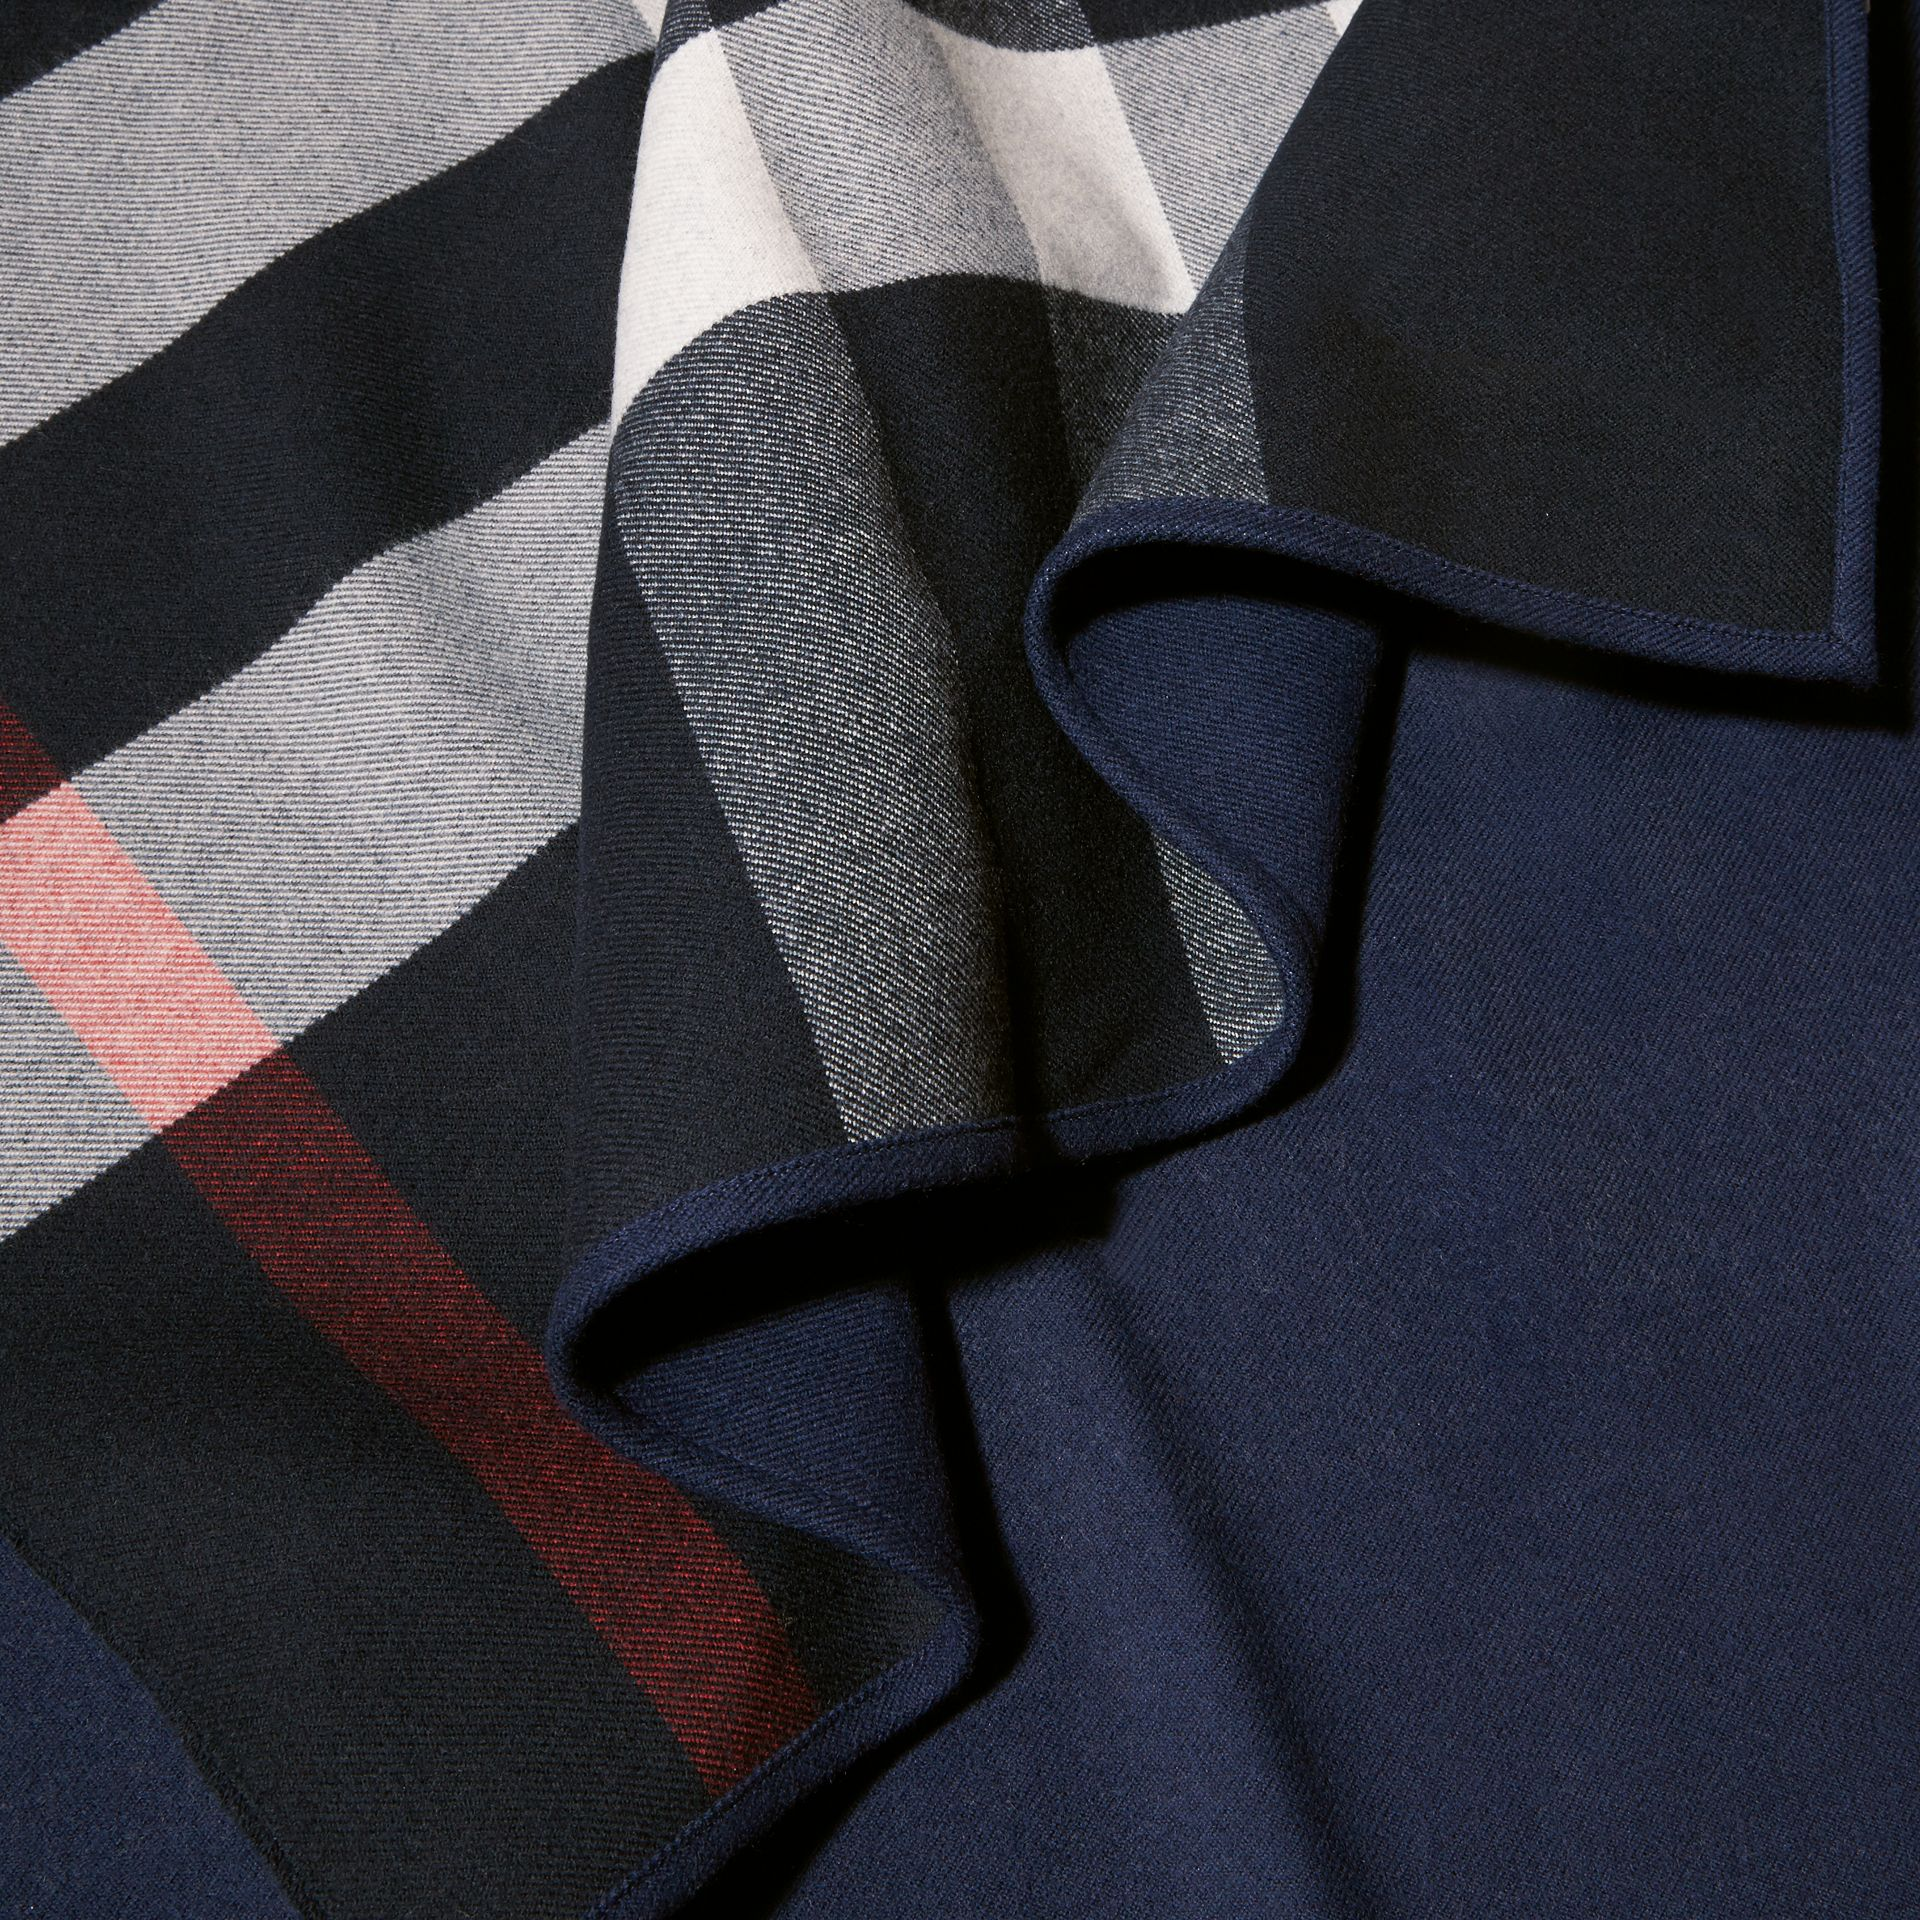 Reversible Check Merino Wool Poncho in Navy - Women | Burberry Singapore - gallery image 2